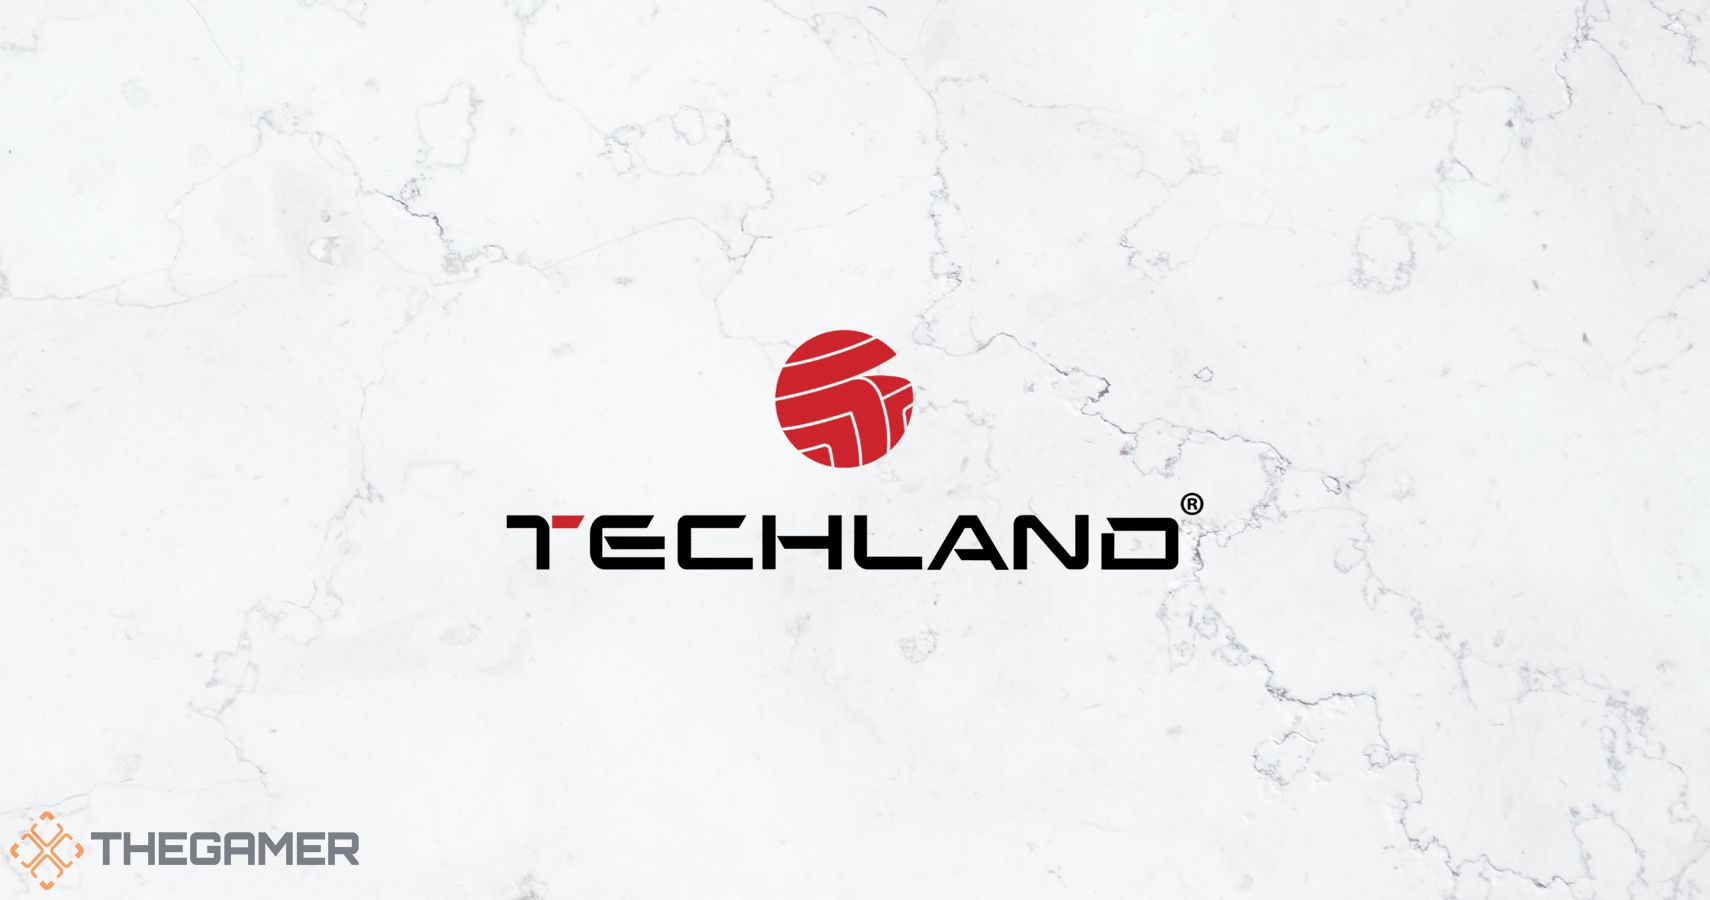 Report: Techland Is Bleeding Talent Due To Autocratic Management, Bad Feedback, And Lack Of Direction